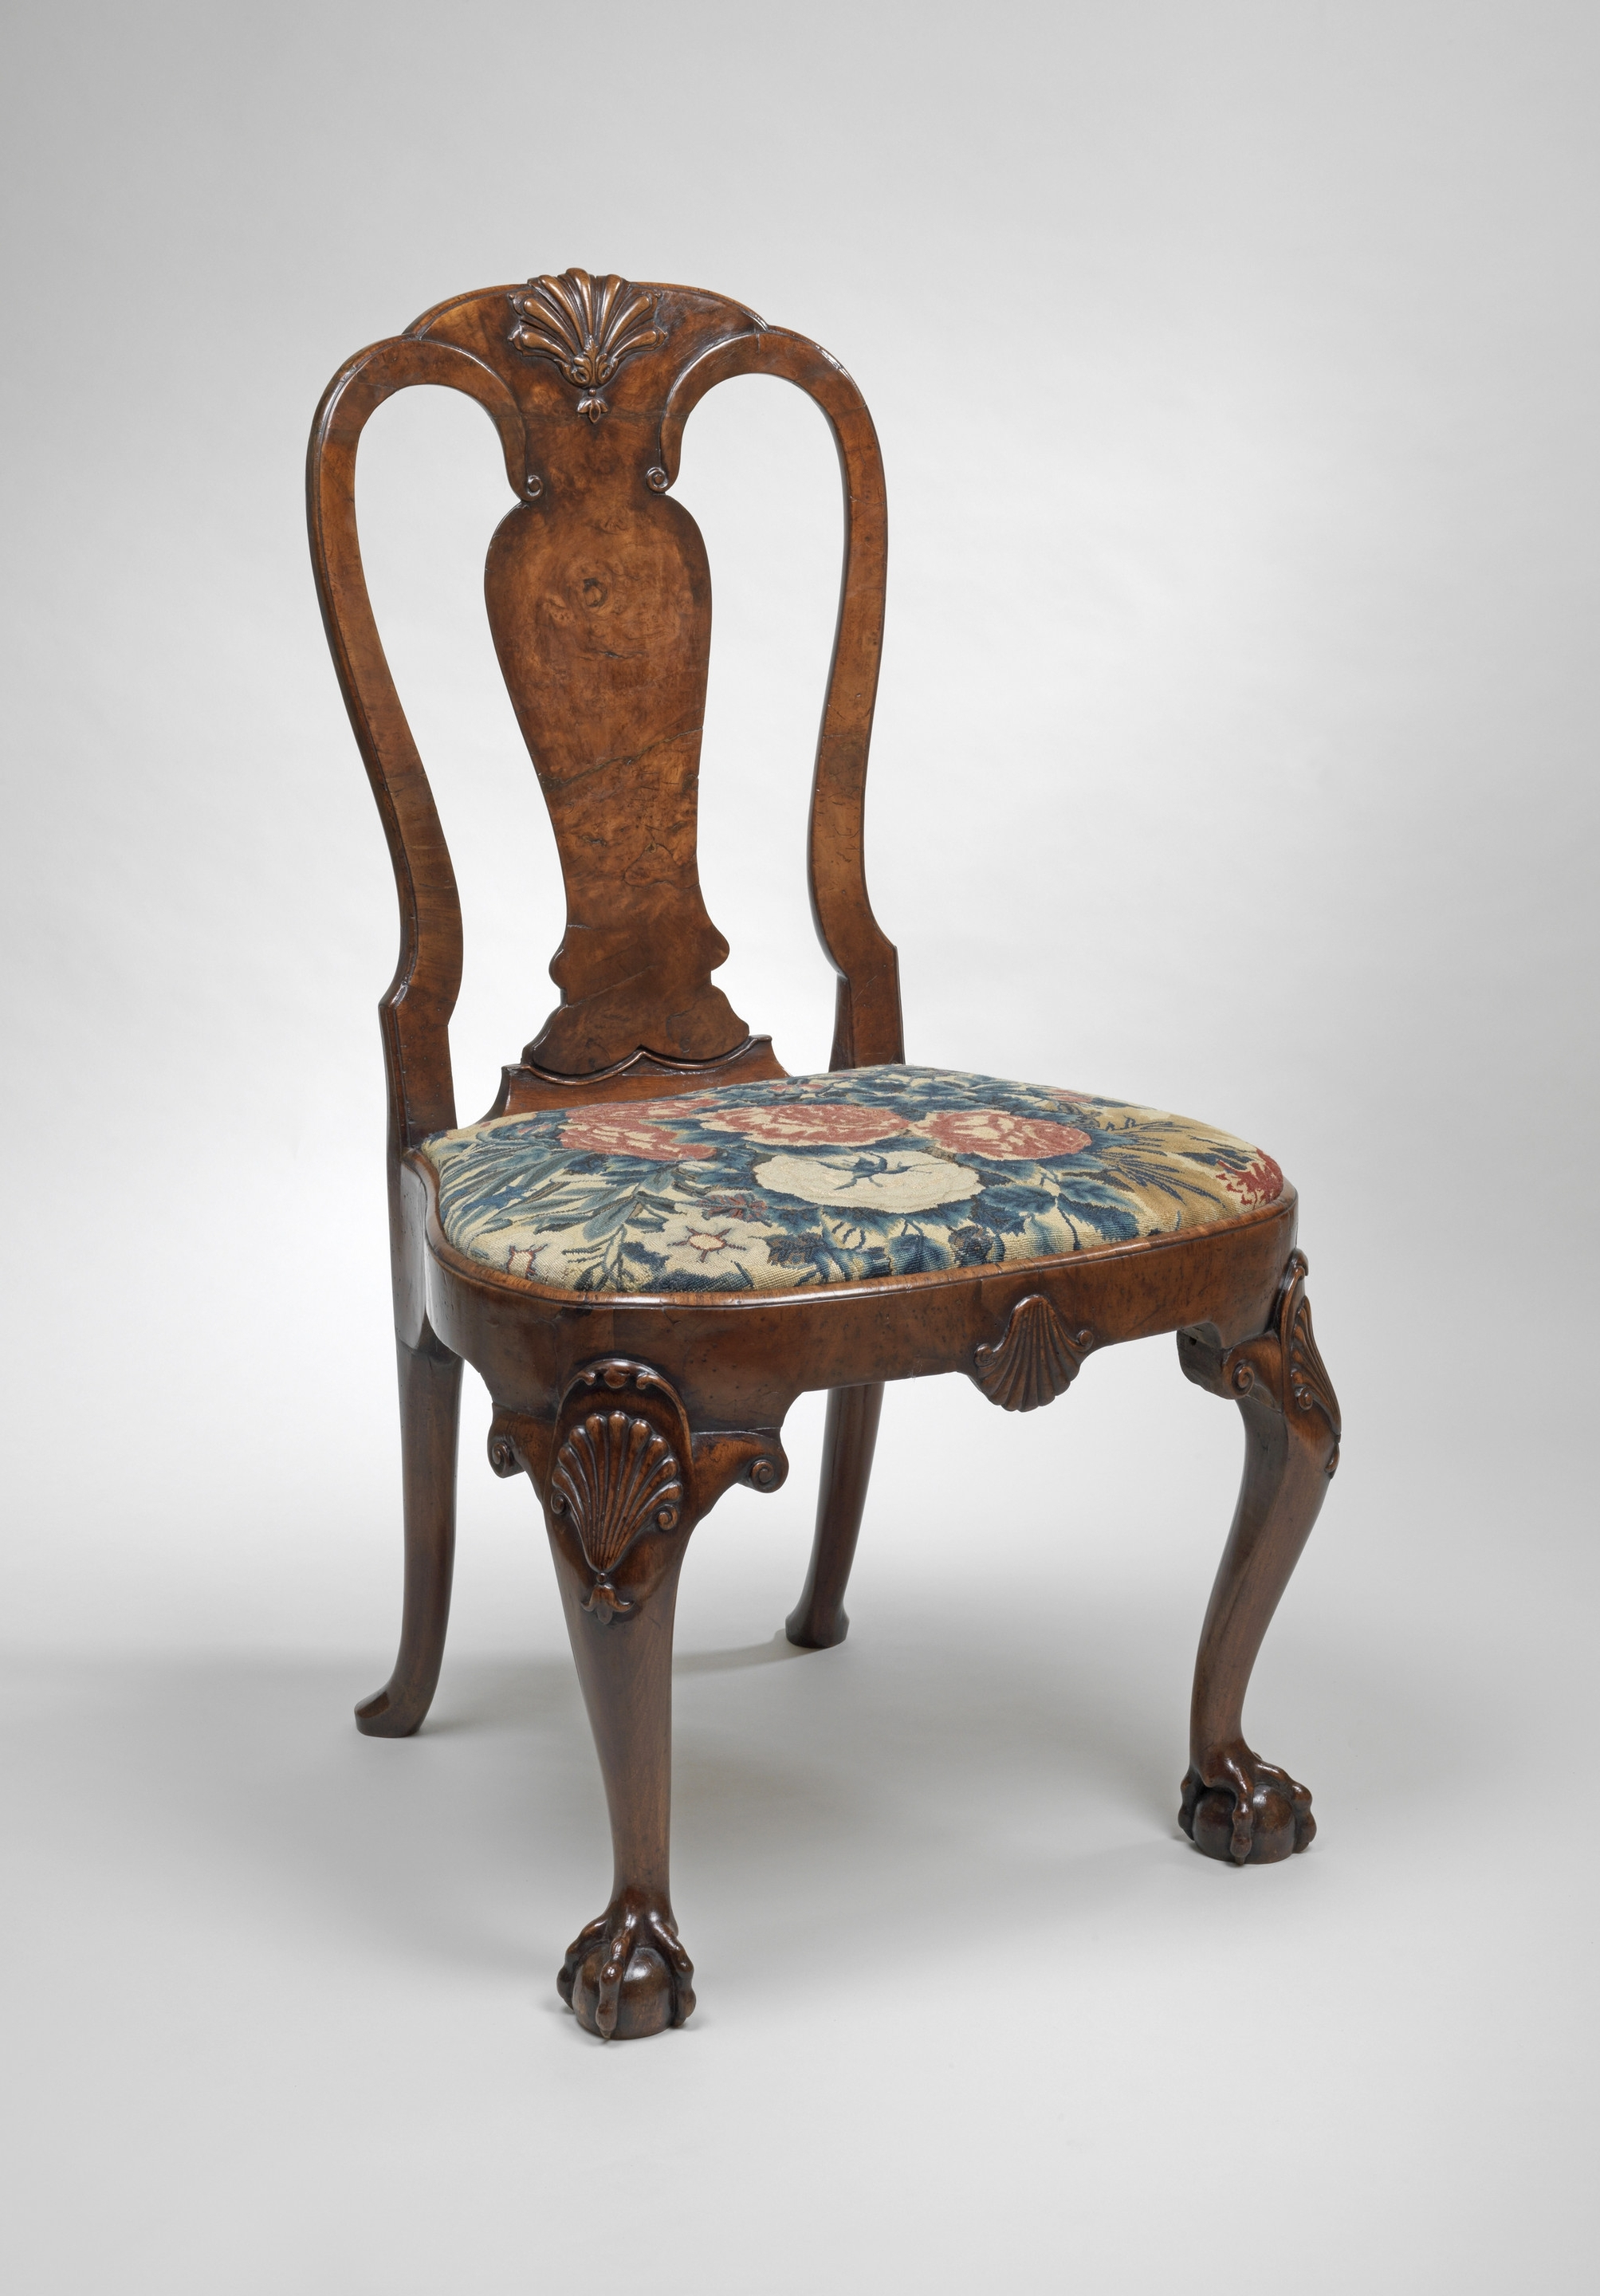 Popular A Pair Of George Ii Burr Walnut Side Chairs (C (View 16 of 20)